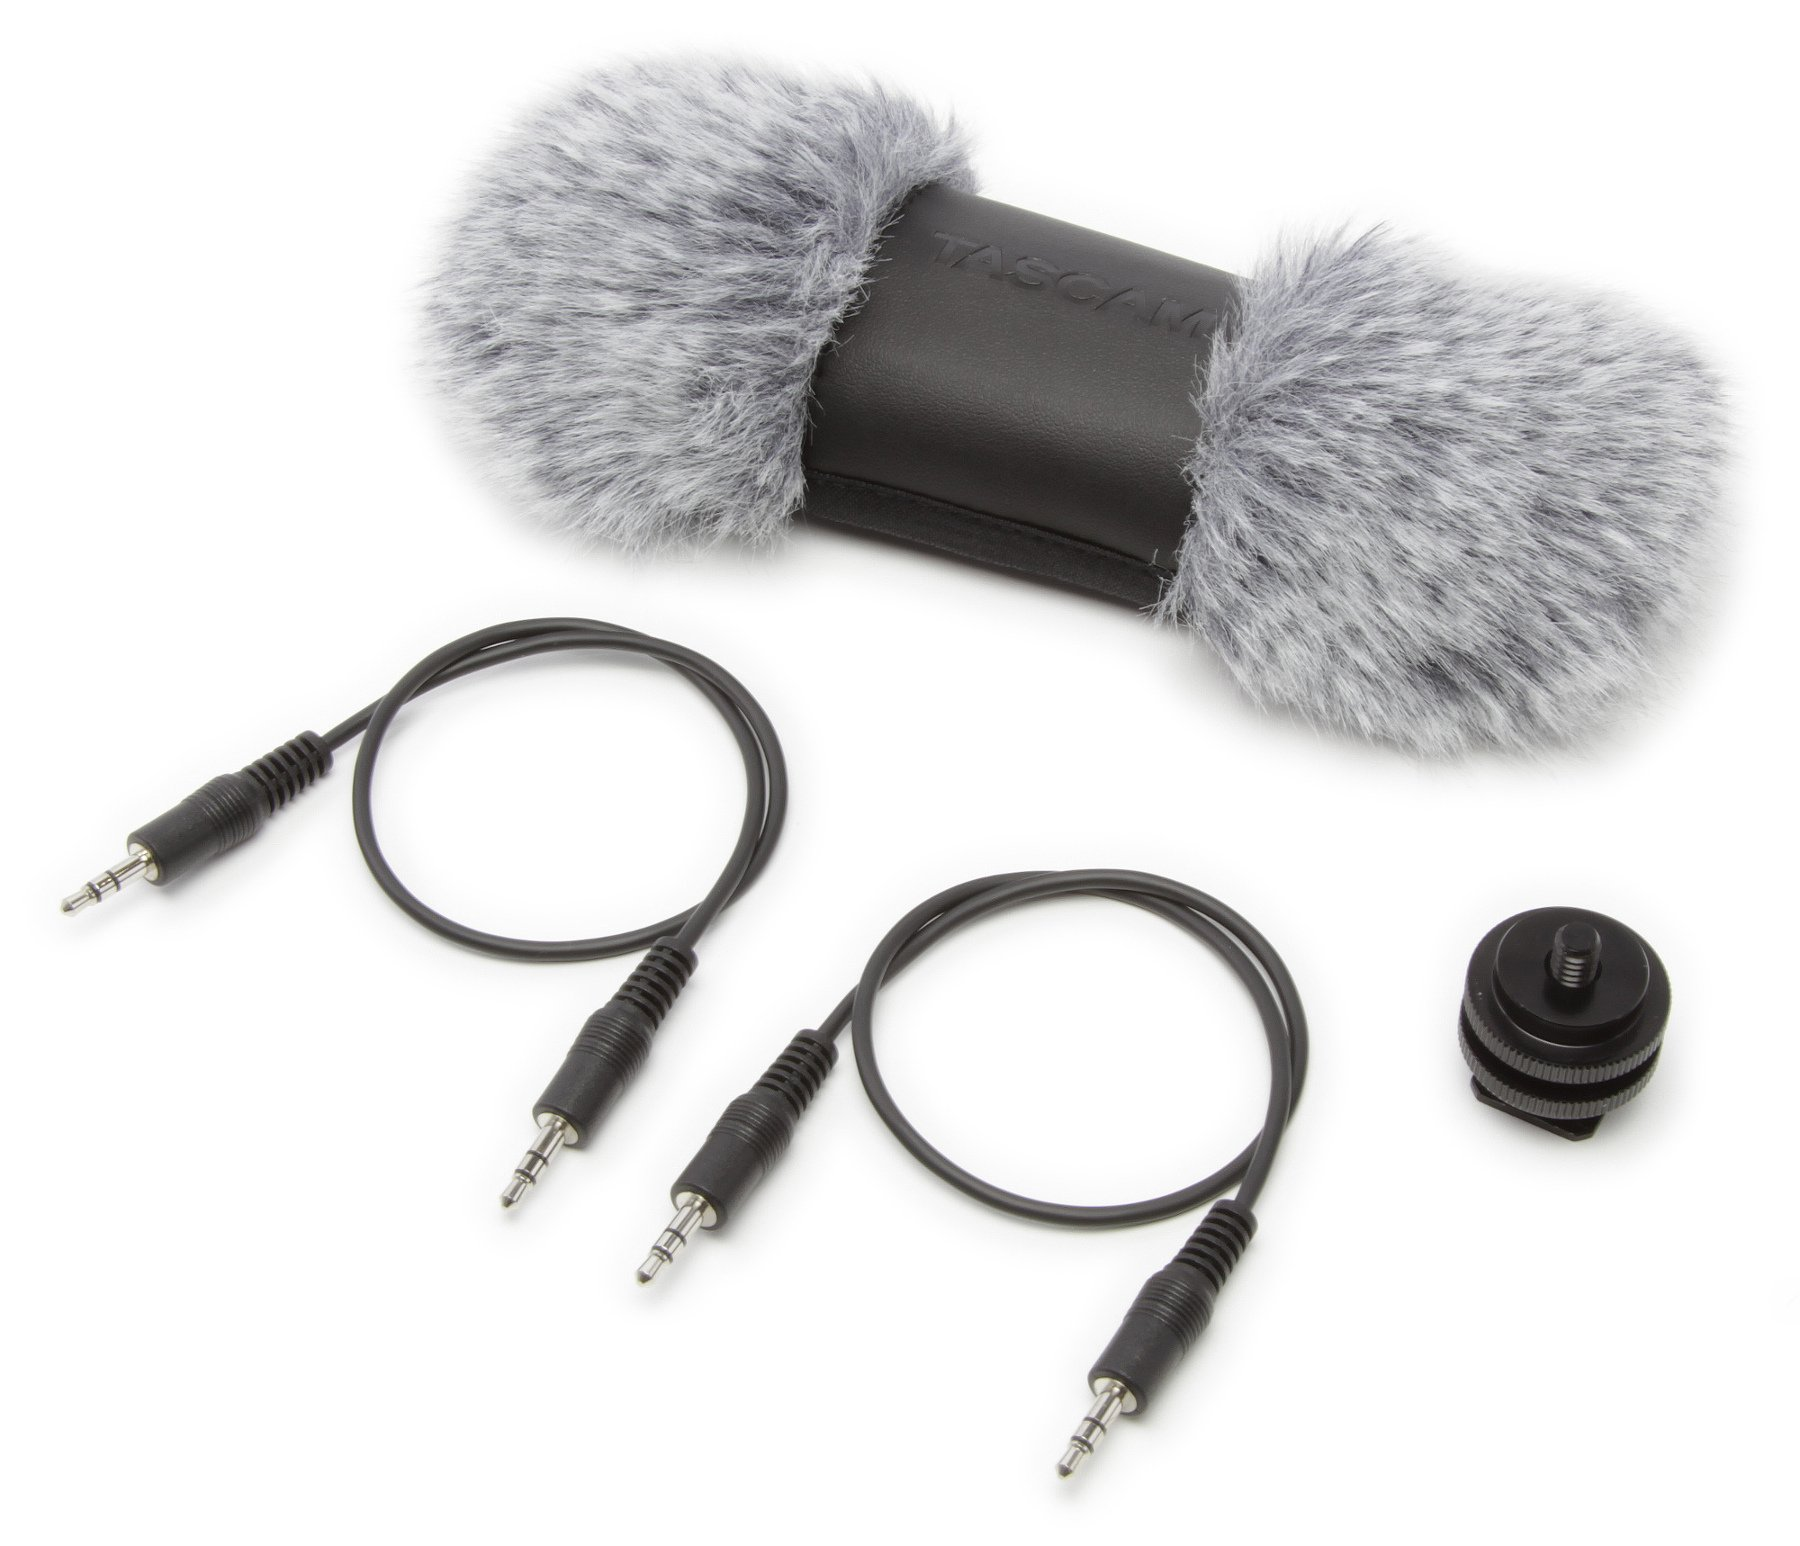 Accessory Pack for DR-70D and DR-701D